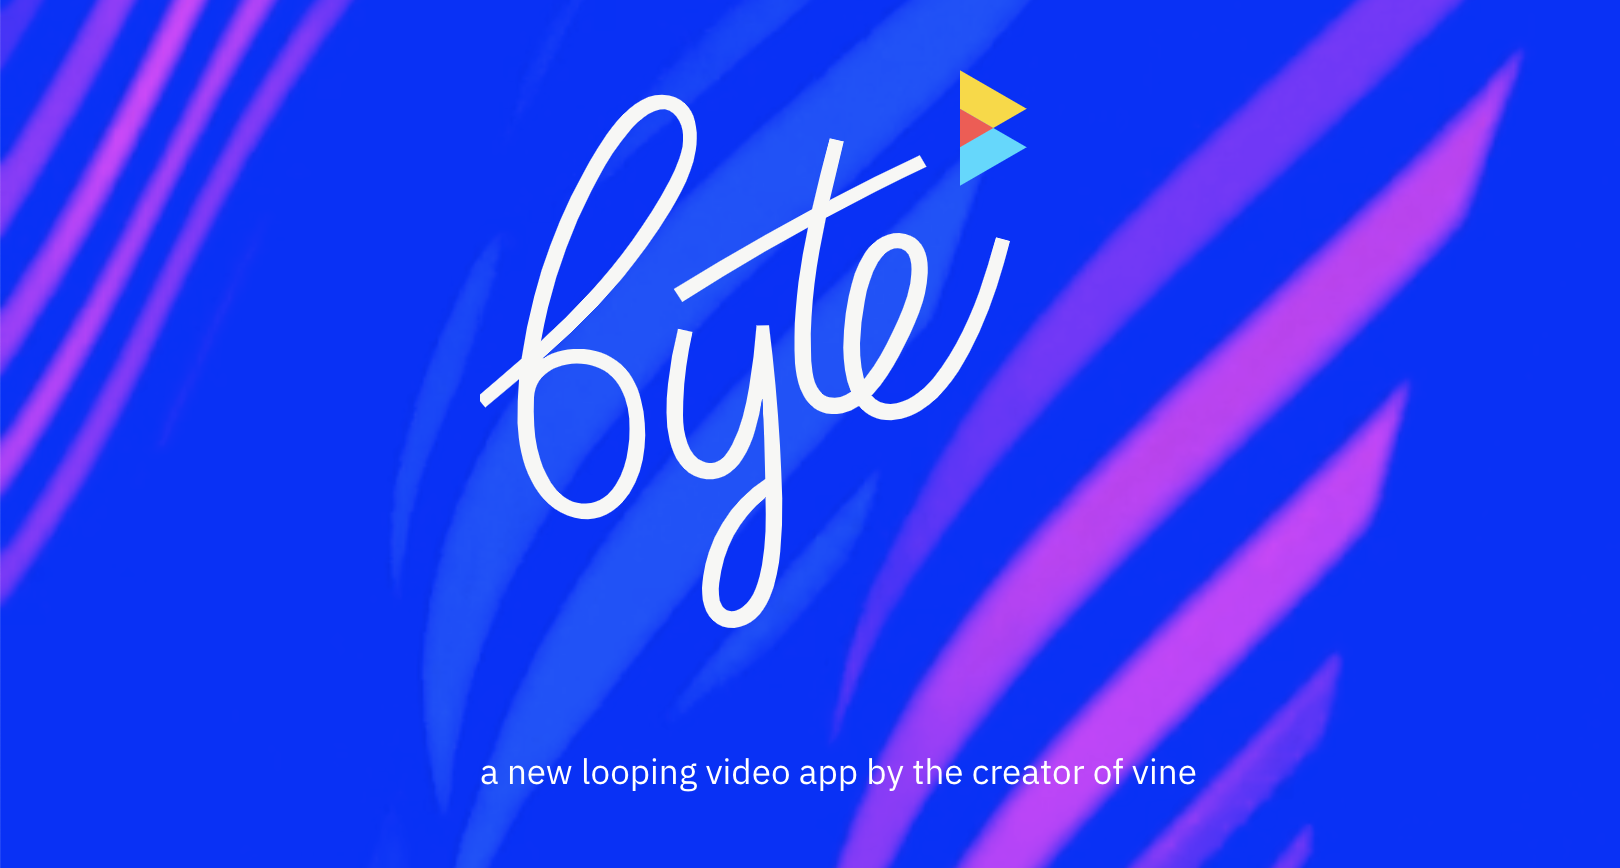 Vine successor called